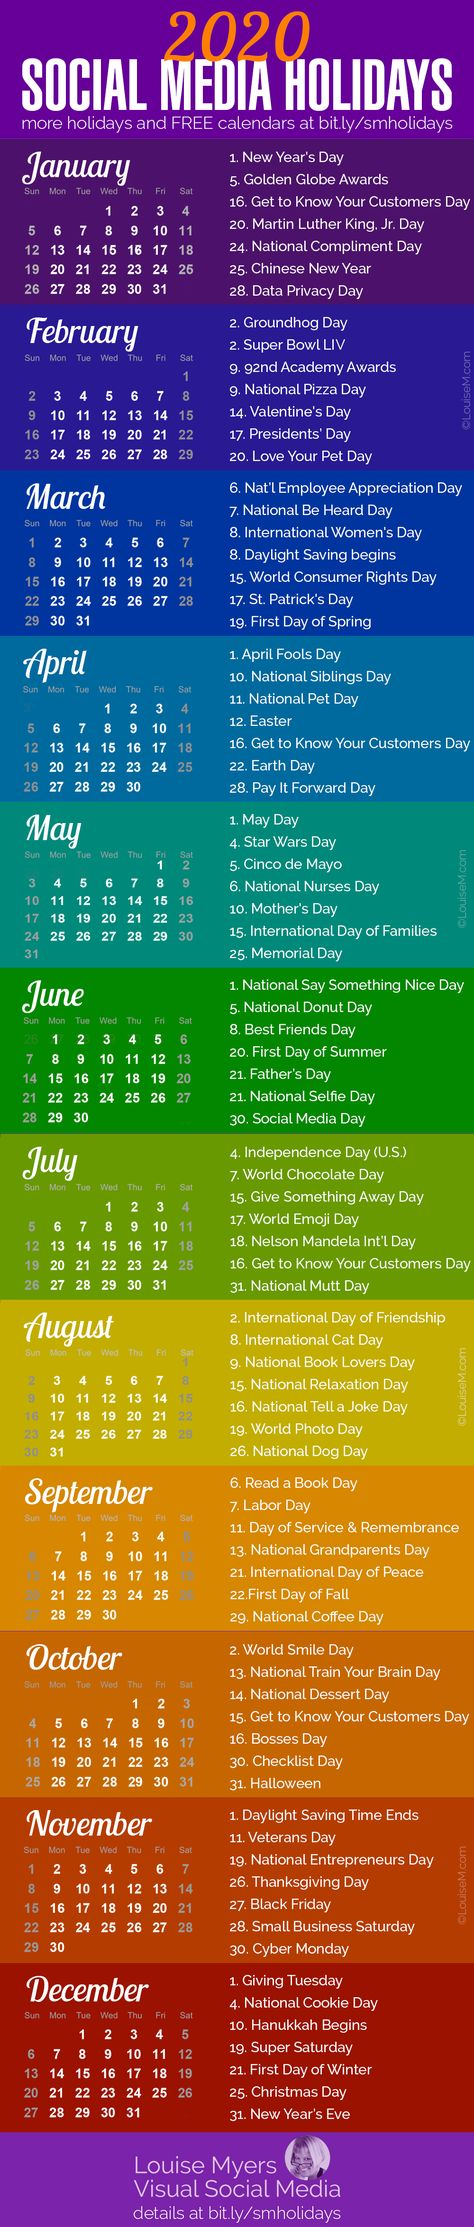 Social media marketing tips: These 2020 holidays are essential for spicing up your content marketing. Click to blog for more ideas and FREE printable calendar monthly. Perfect for small business owners, entrepreneurs, and bloggers. | #LouiseM #ContentMarketing #SmallBusinessTips #Calendar2020 #Printable #Holidays #SocialMediaMarketing #SMM